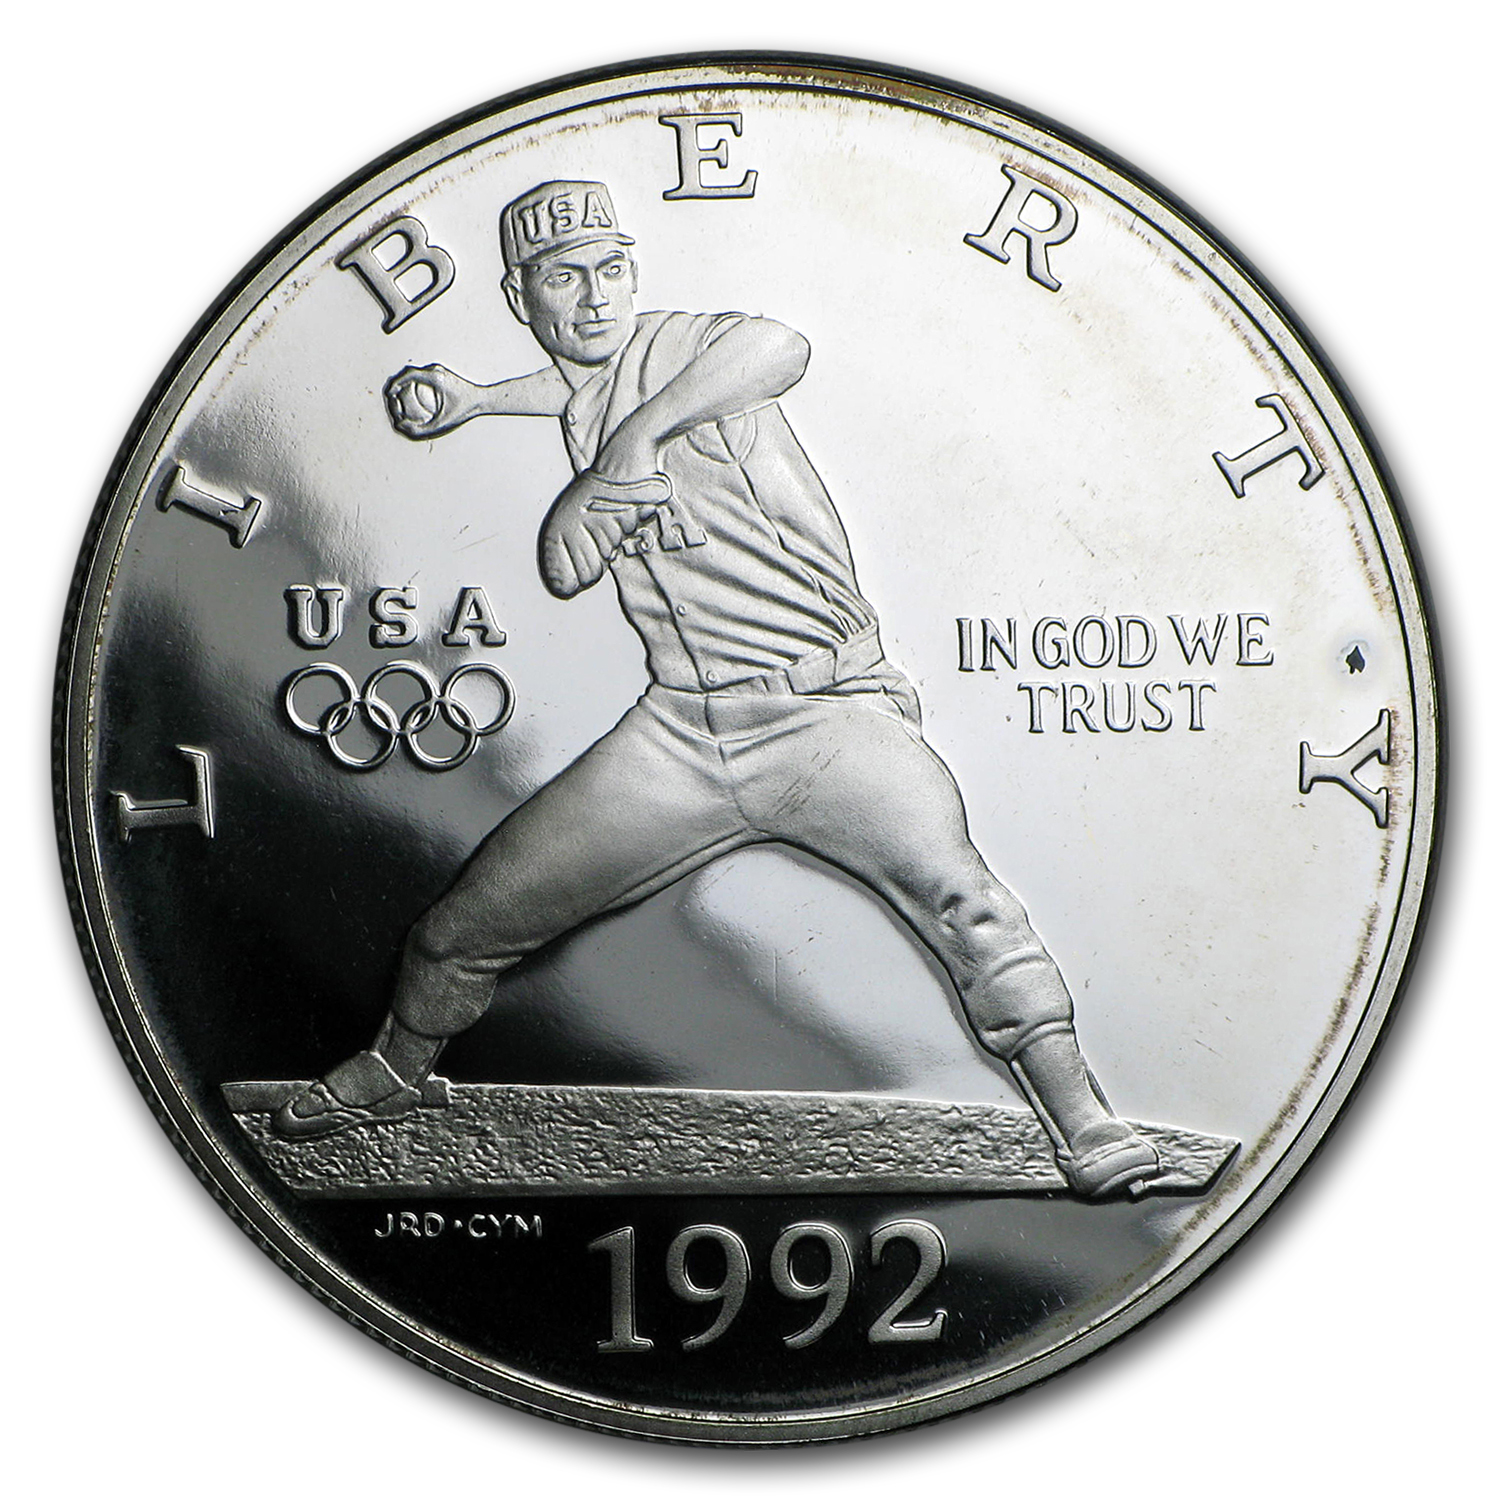 1992-S Olympic Baseball $1 Silver Commem Proof (w/Box & COA)